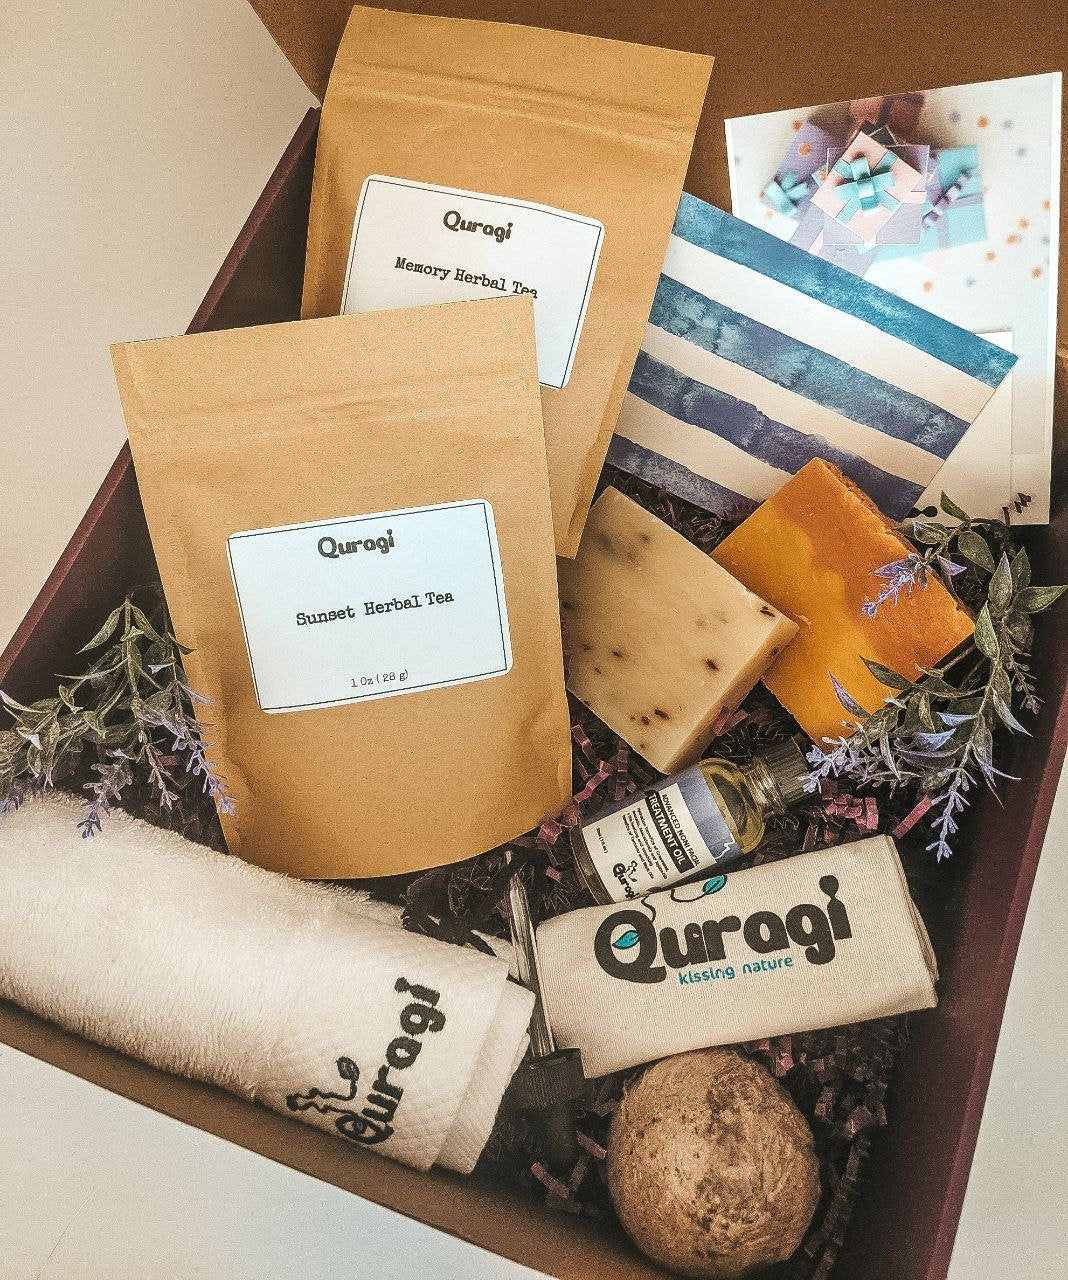 Personalized Gift, Self Care Package, Thinking Of You, Gift Basket, Gift Box for Her, Miss You Gift, Gift for Mom Gift, Tea Gift, Home Spa